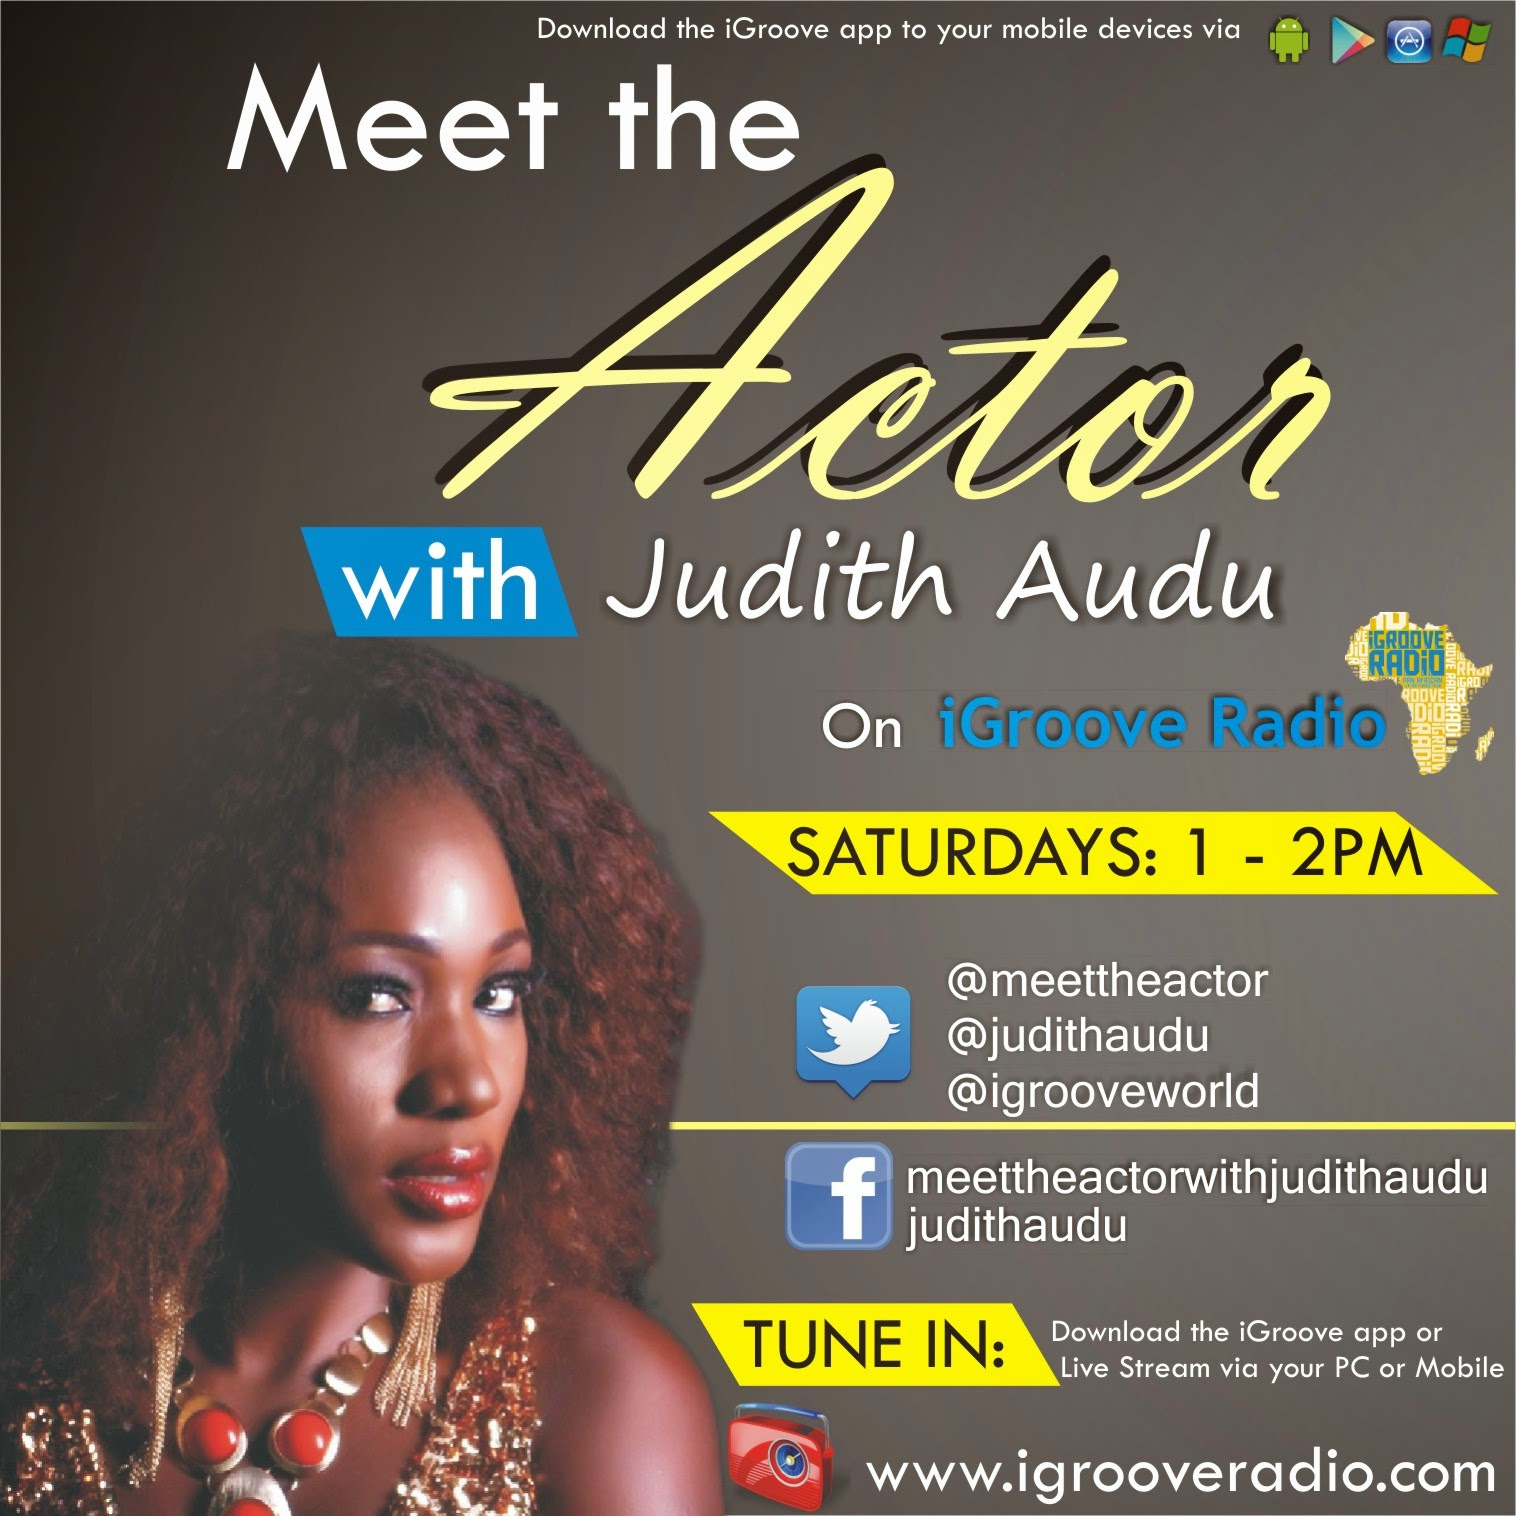 MEET the ACTOR with Judith Audu